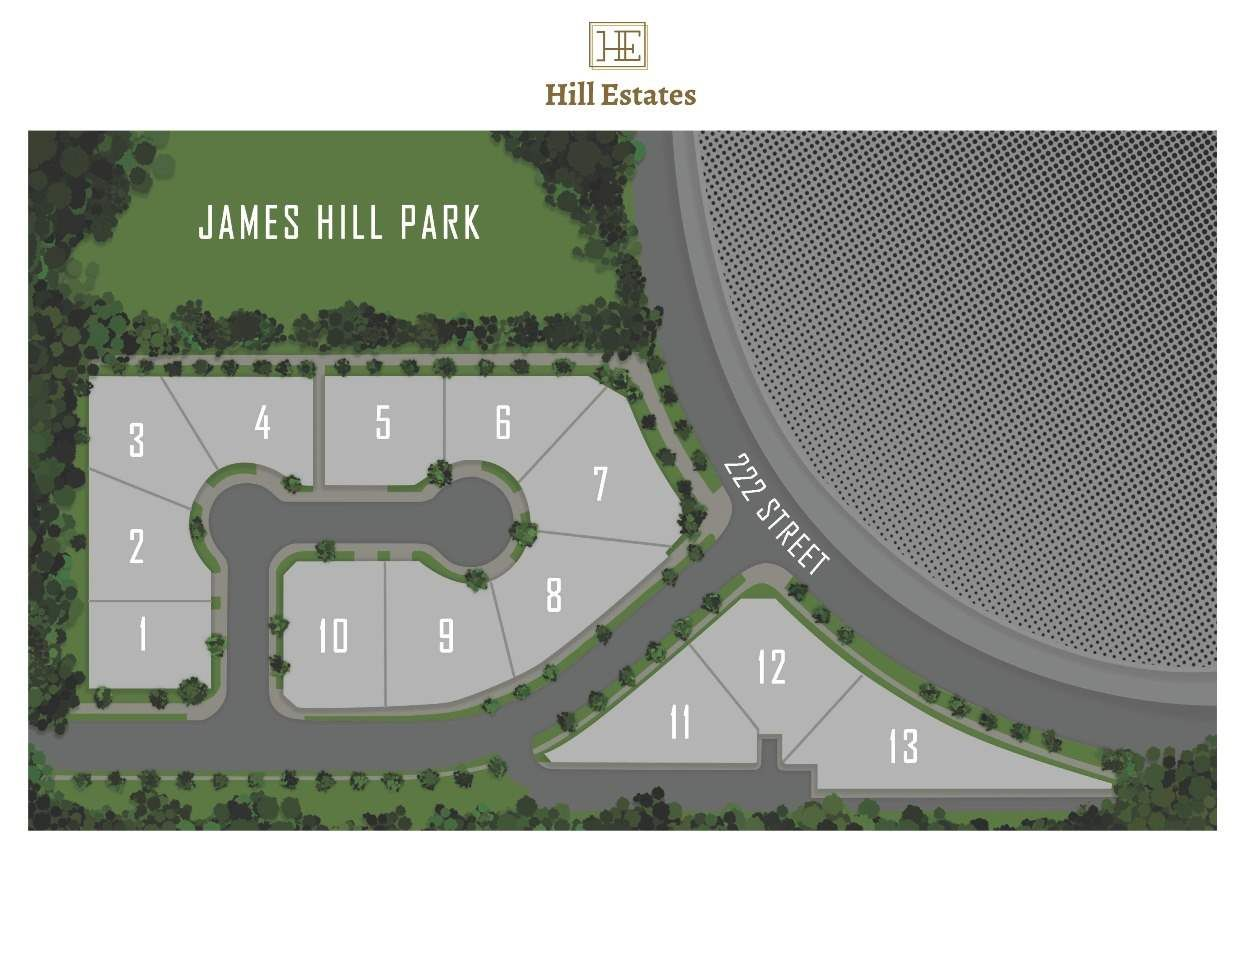 """Main Photo: Lot 4 4467 222 Street in Langley: Murrayville Land for sale in """"Hill Estates"""" : MLS®# R2553795"""